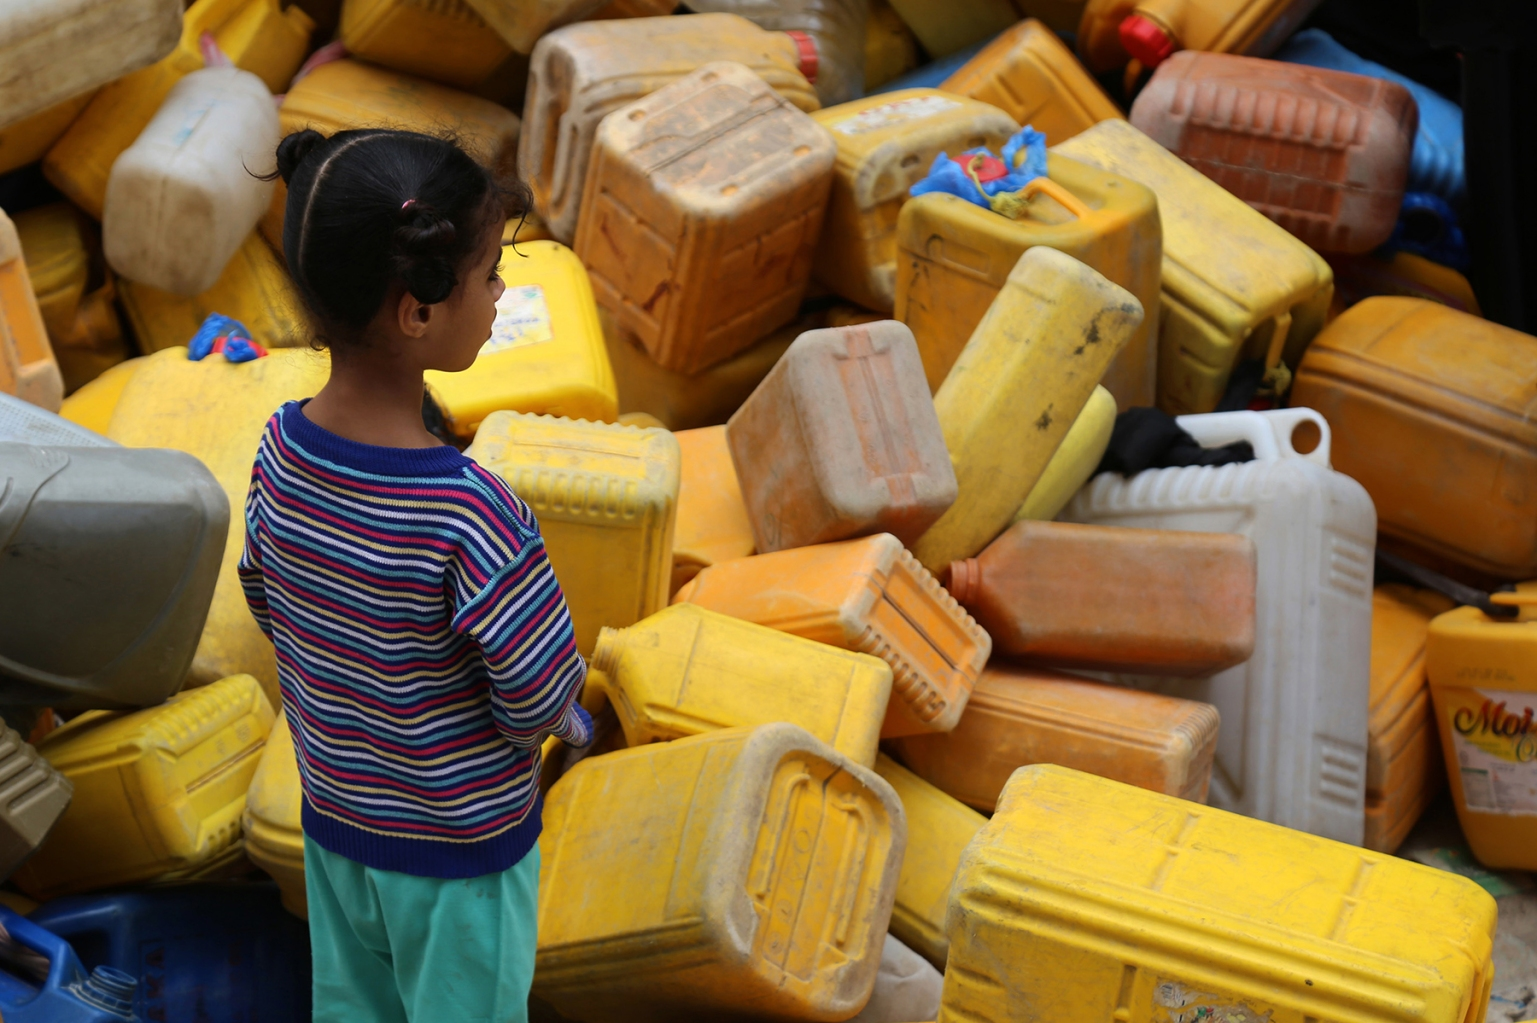 A Yemeni girl looks at plastic containers as people wait to collect water from a tank in the southwestern Yemeni city of Taez on April 3. AHMAD AL-BASHA/AFP/Getty Images